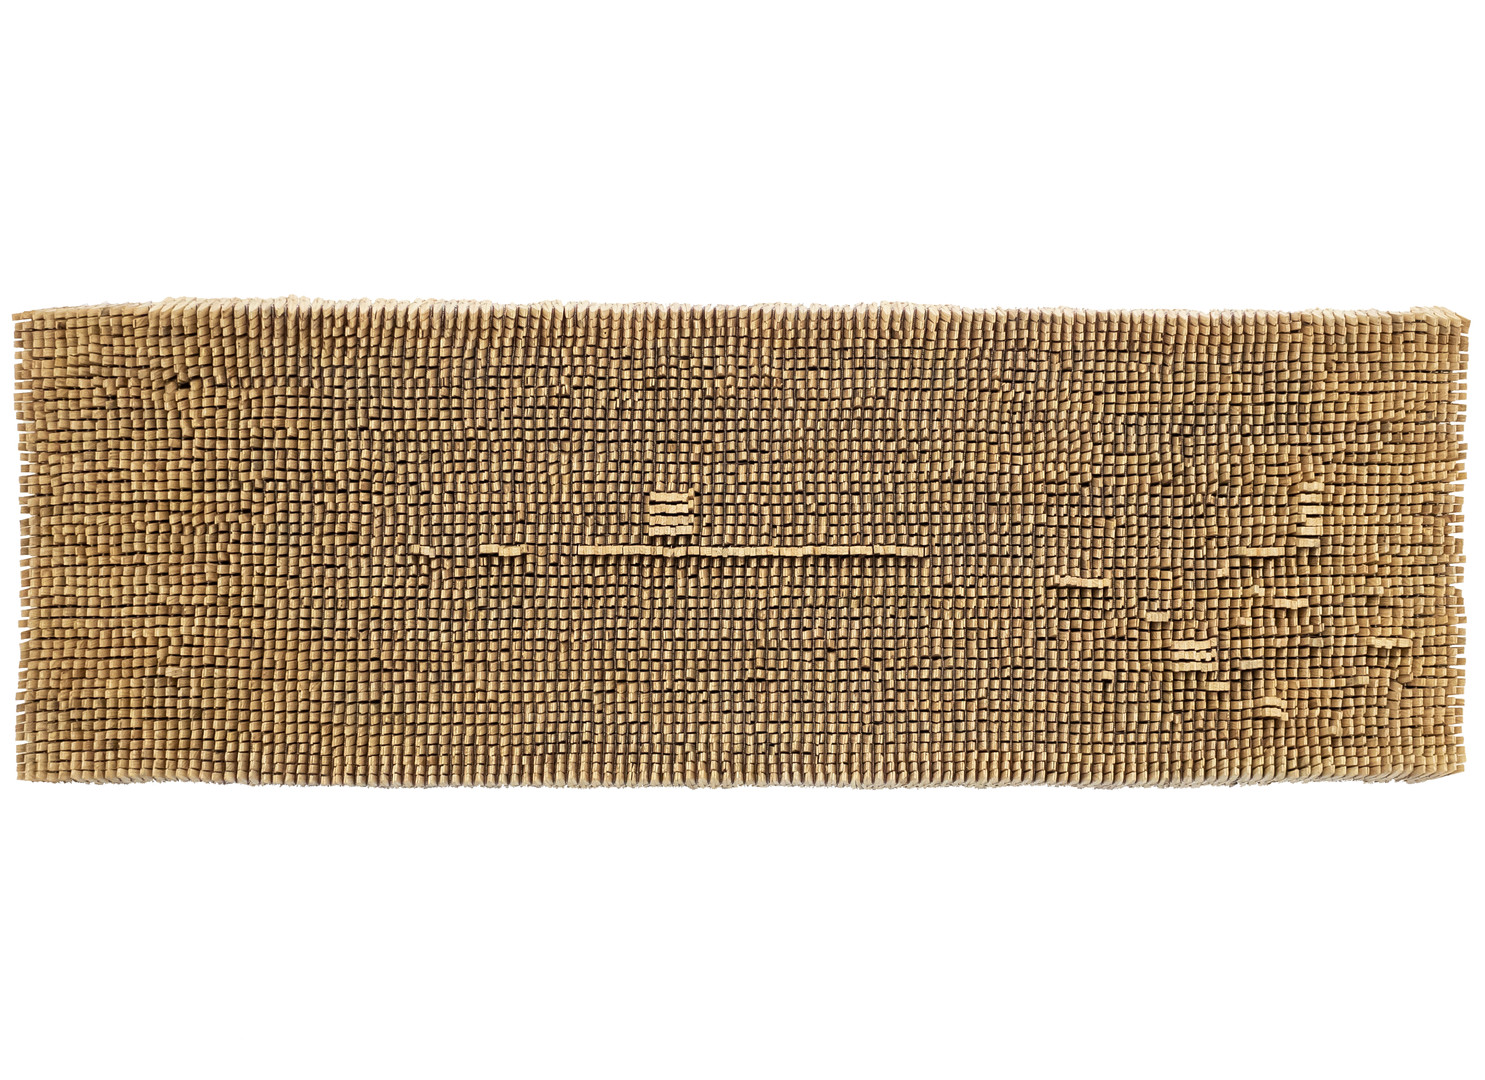 Usha Seejarim | A Message | 2019 | Pegs and Wire | 52 x 161 x 7.4 cm